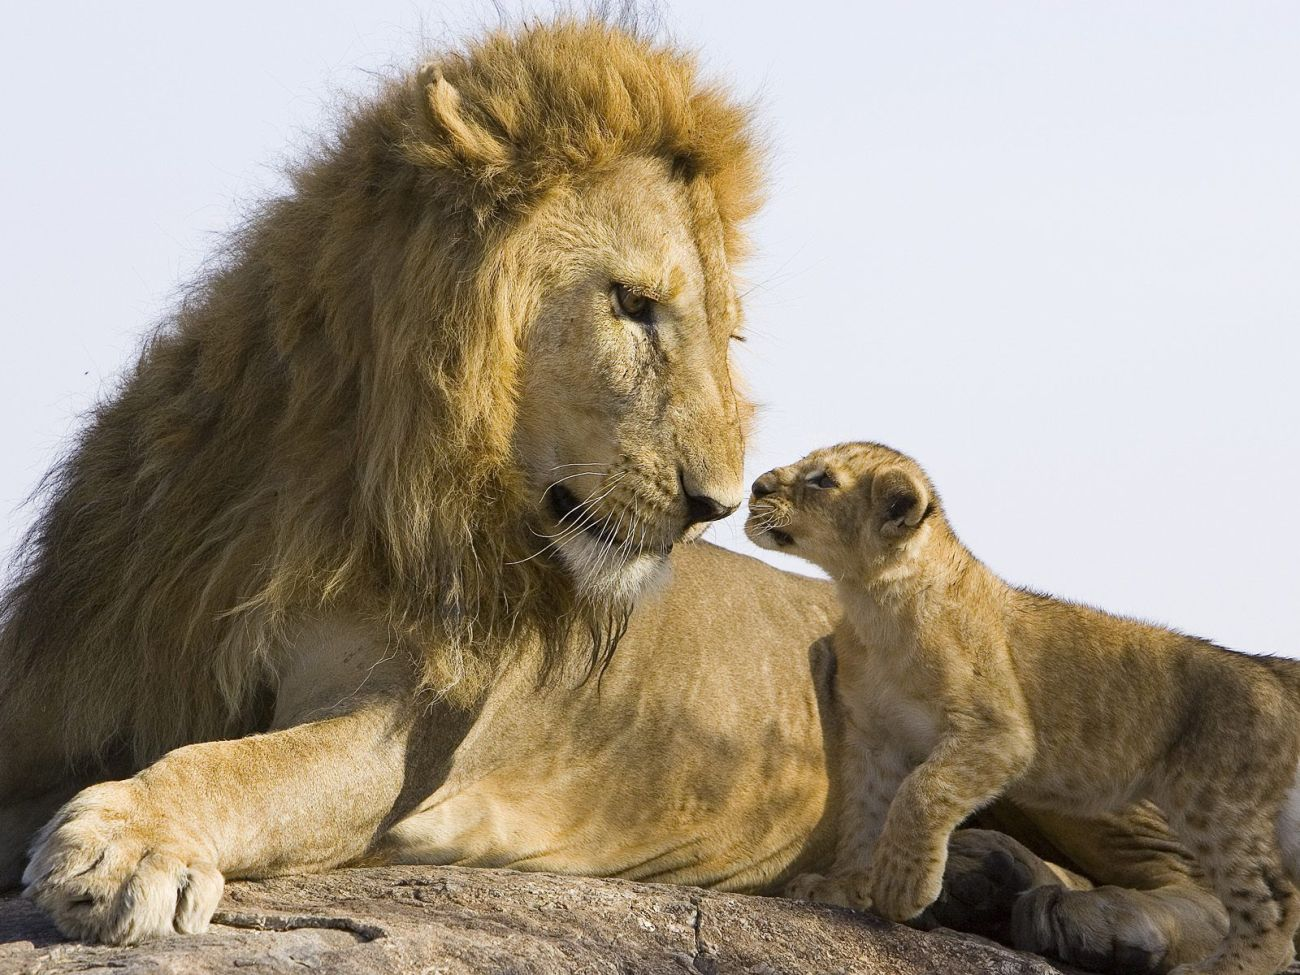 http://www.bartcop.com/lion-and-cub.jpg